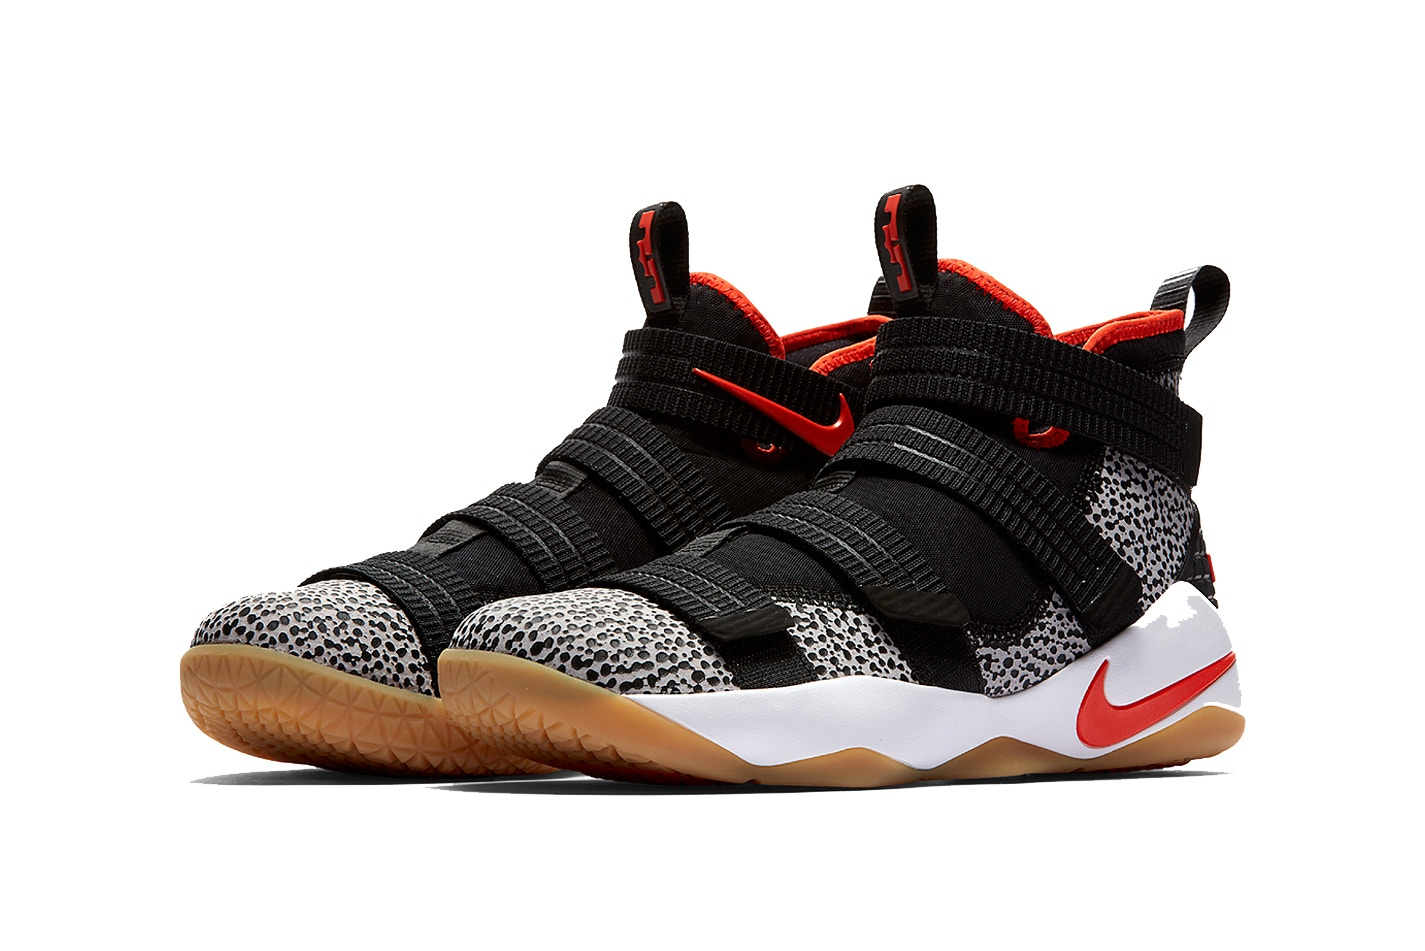 """36b5e2b8aeb9c Nike has reworked its LeBron Soldier 11 shoe once more, this time releasing  the model in the classic """"Safari"""" colorway that the Swoosh has been using  ..."""